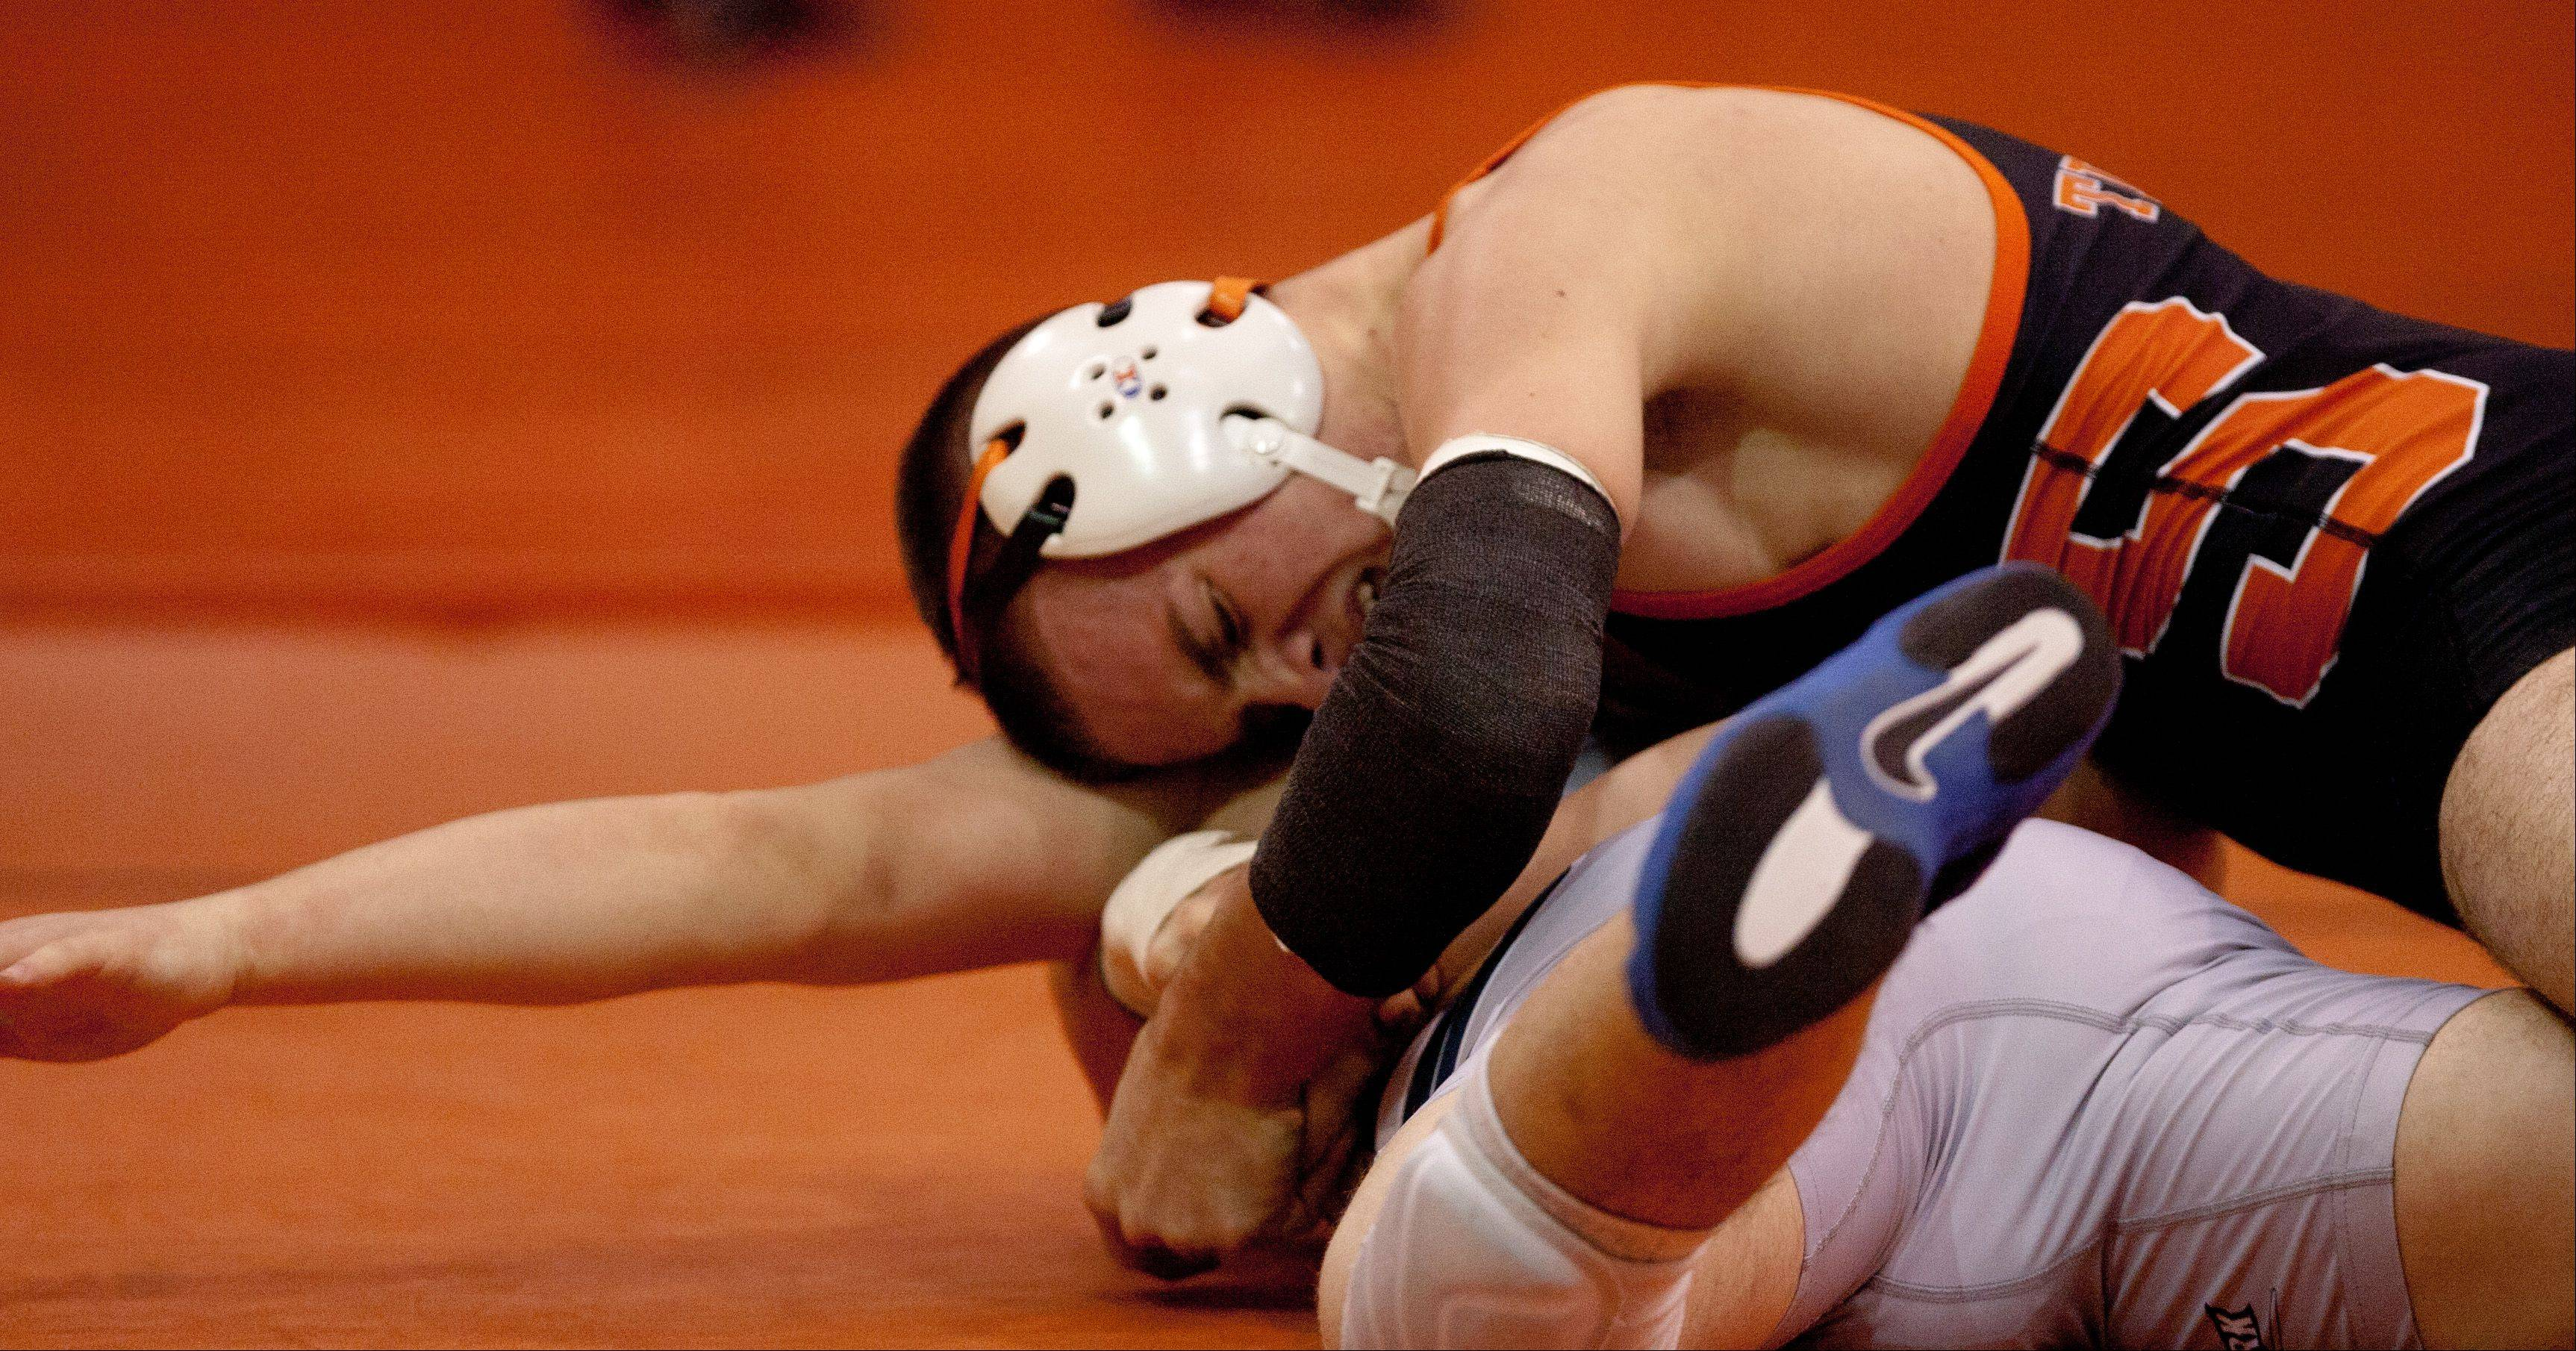 Wheaton Warrenville South's Camden Johnnic works to pin Lake Park's Kevin Korney at the 152 weight, during the Wheaton Warrenville South wrestling quad.